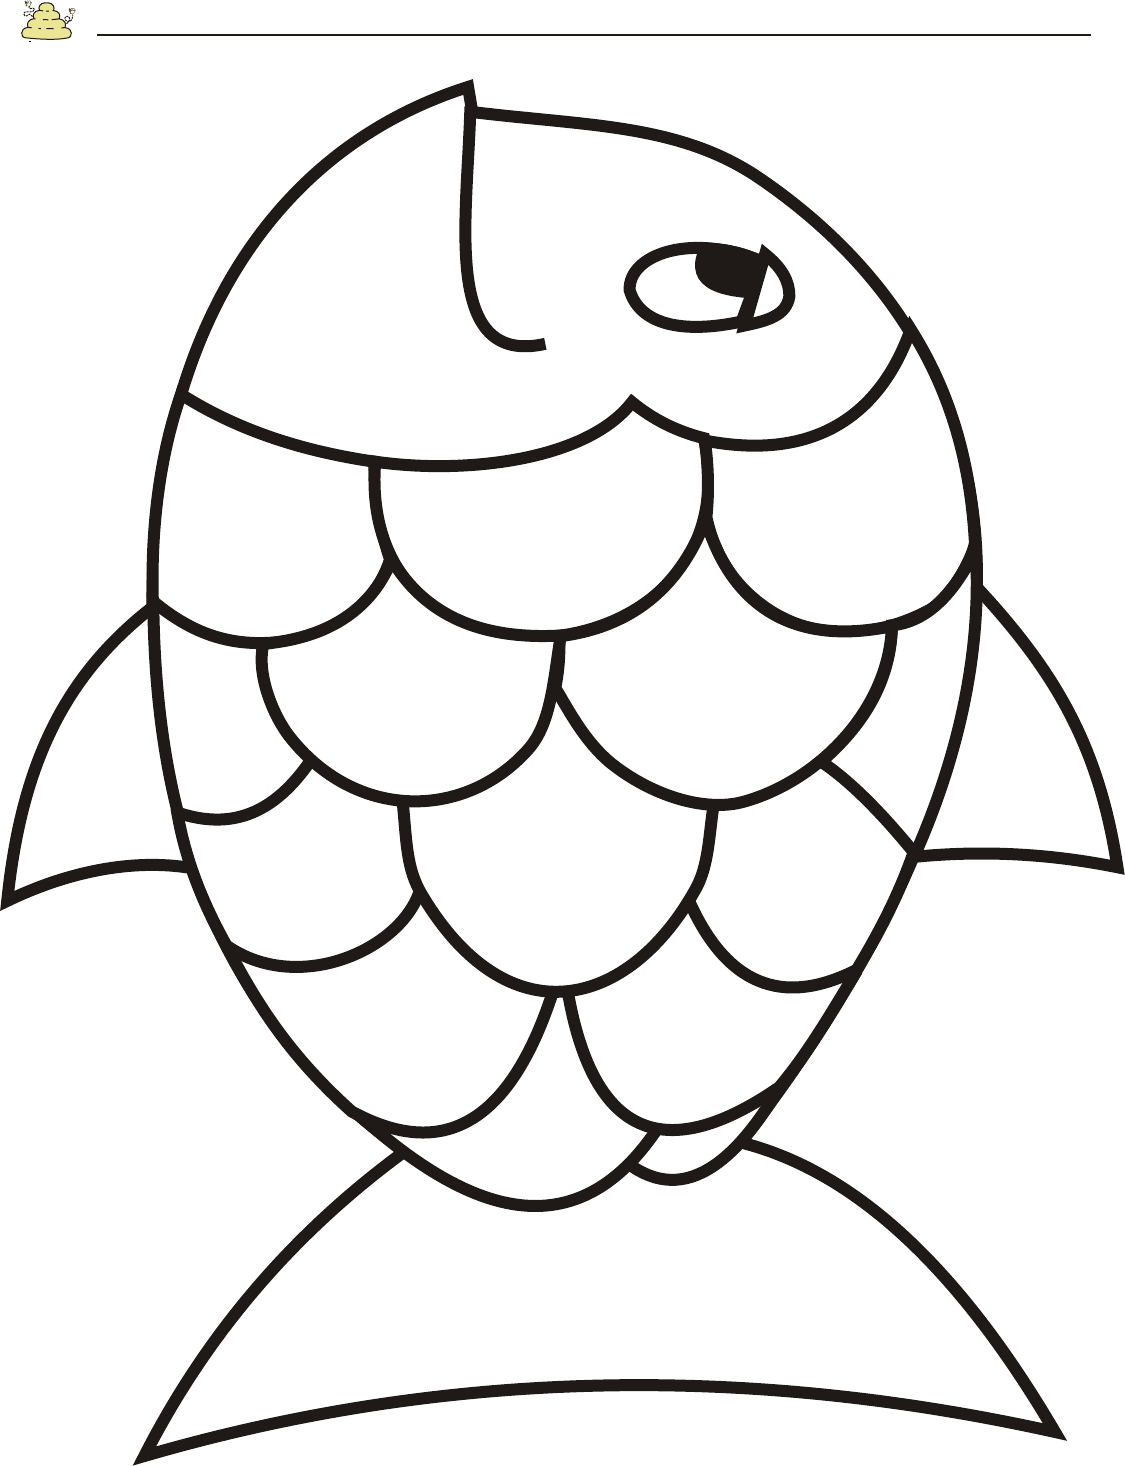 Fish Coloring Pages Pdf : coloring, pages, Template, #rainbow, #pages, #free, #fish, #page, #pdfFree, Rainbow, Page(s), Crafts,, Template,